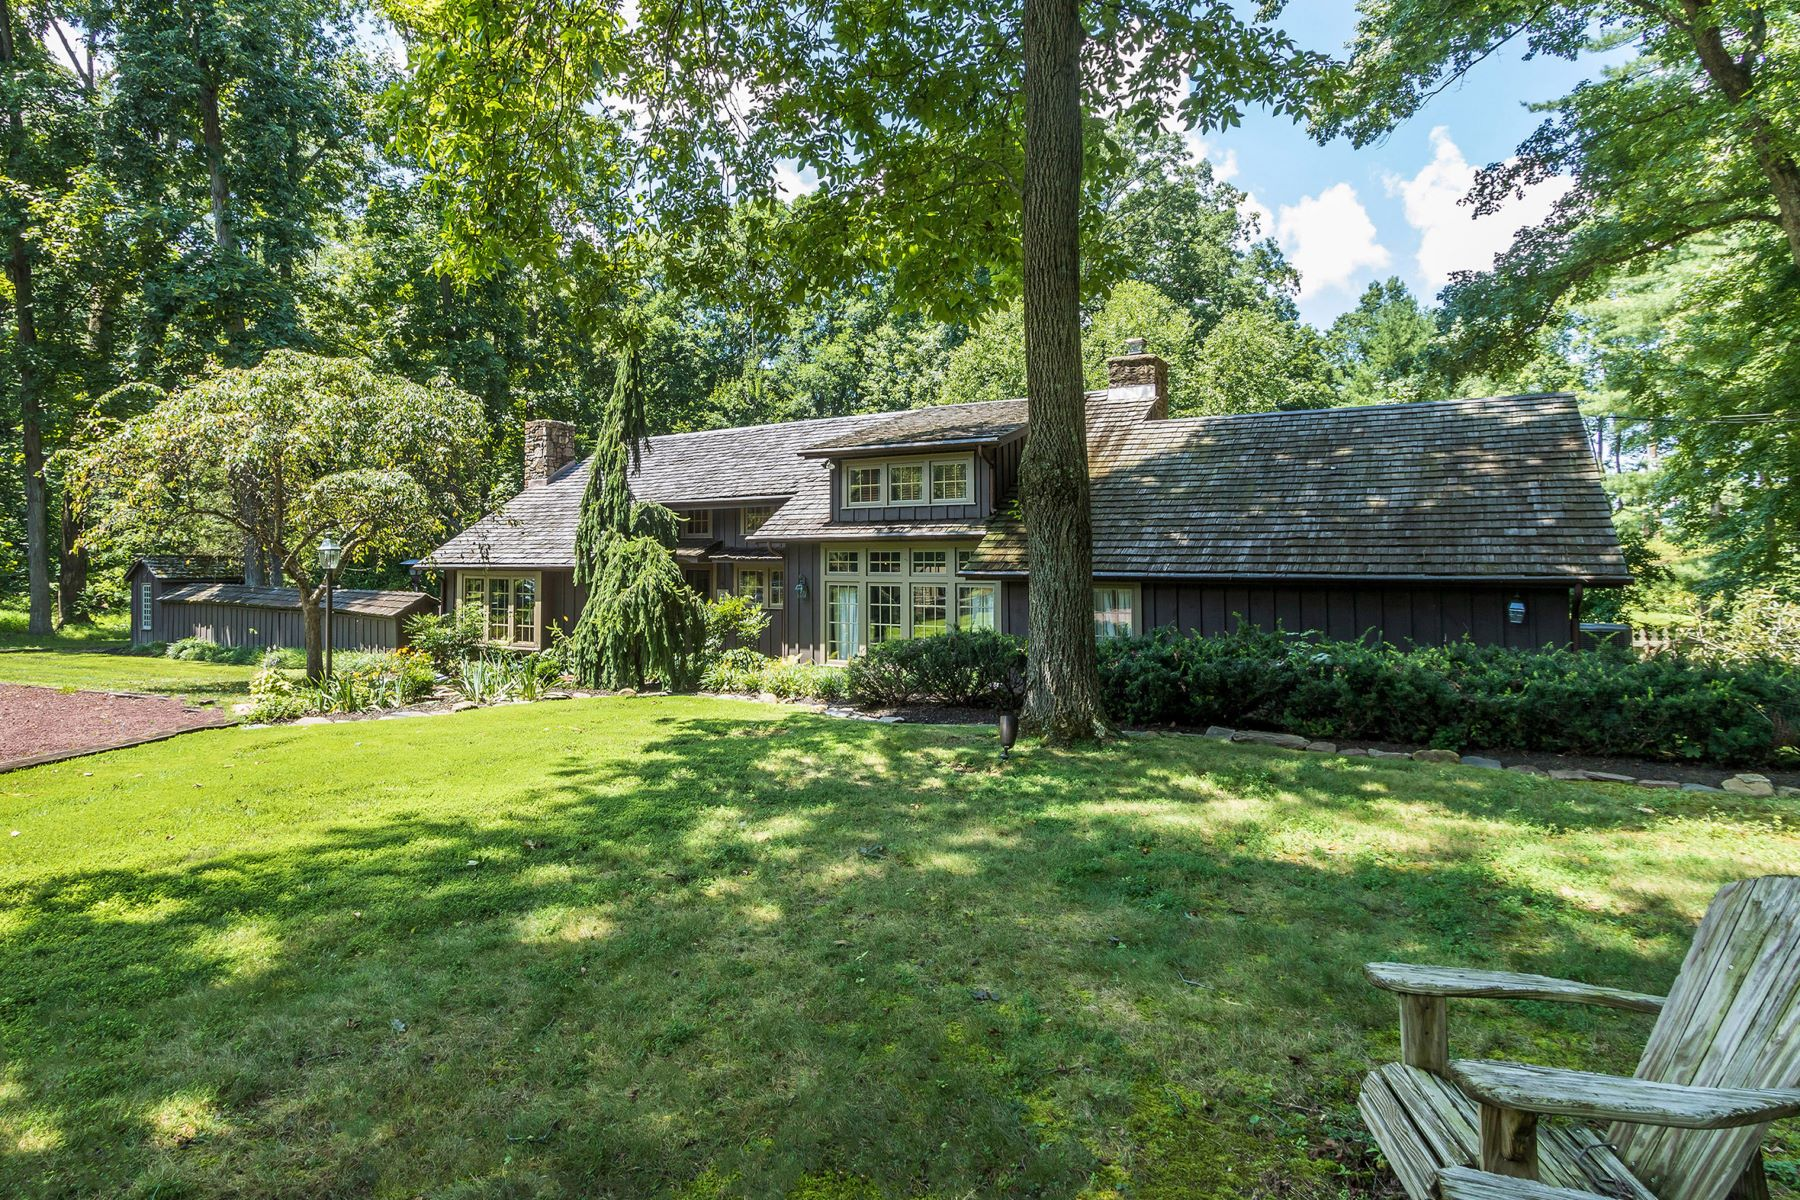 Single Family Homes for Sale at 4818 COLD SPRING CREAMERY RD Doylestown, Pennsylvania 18902 United States